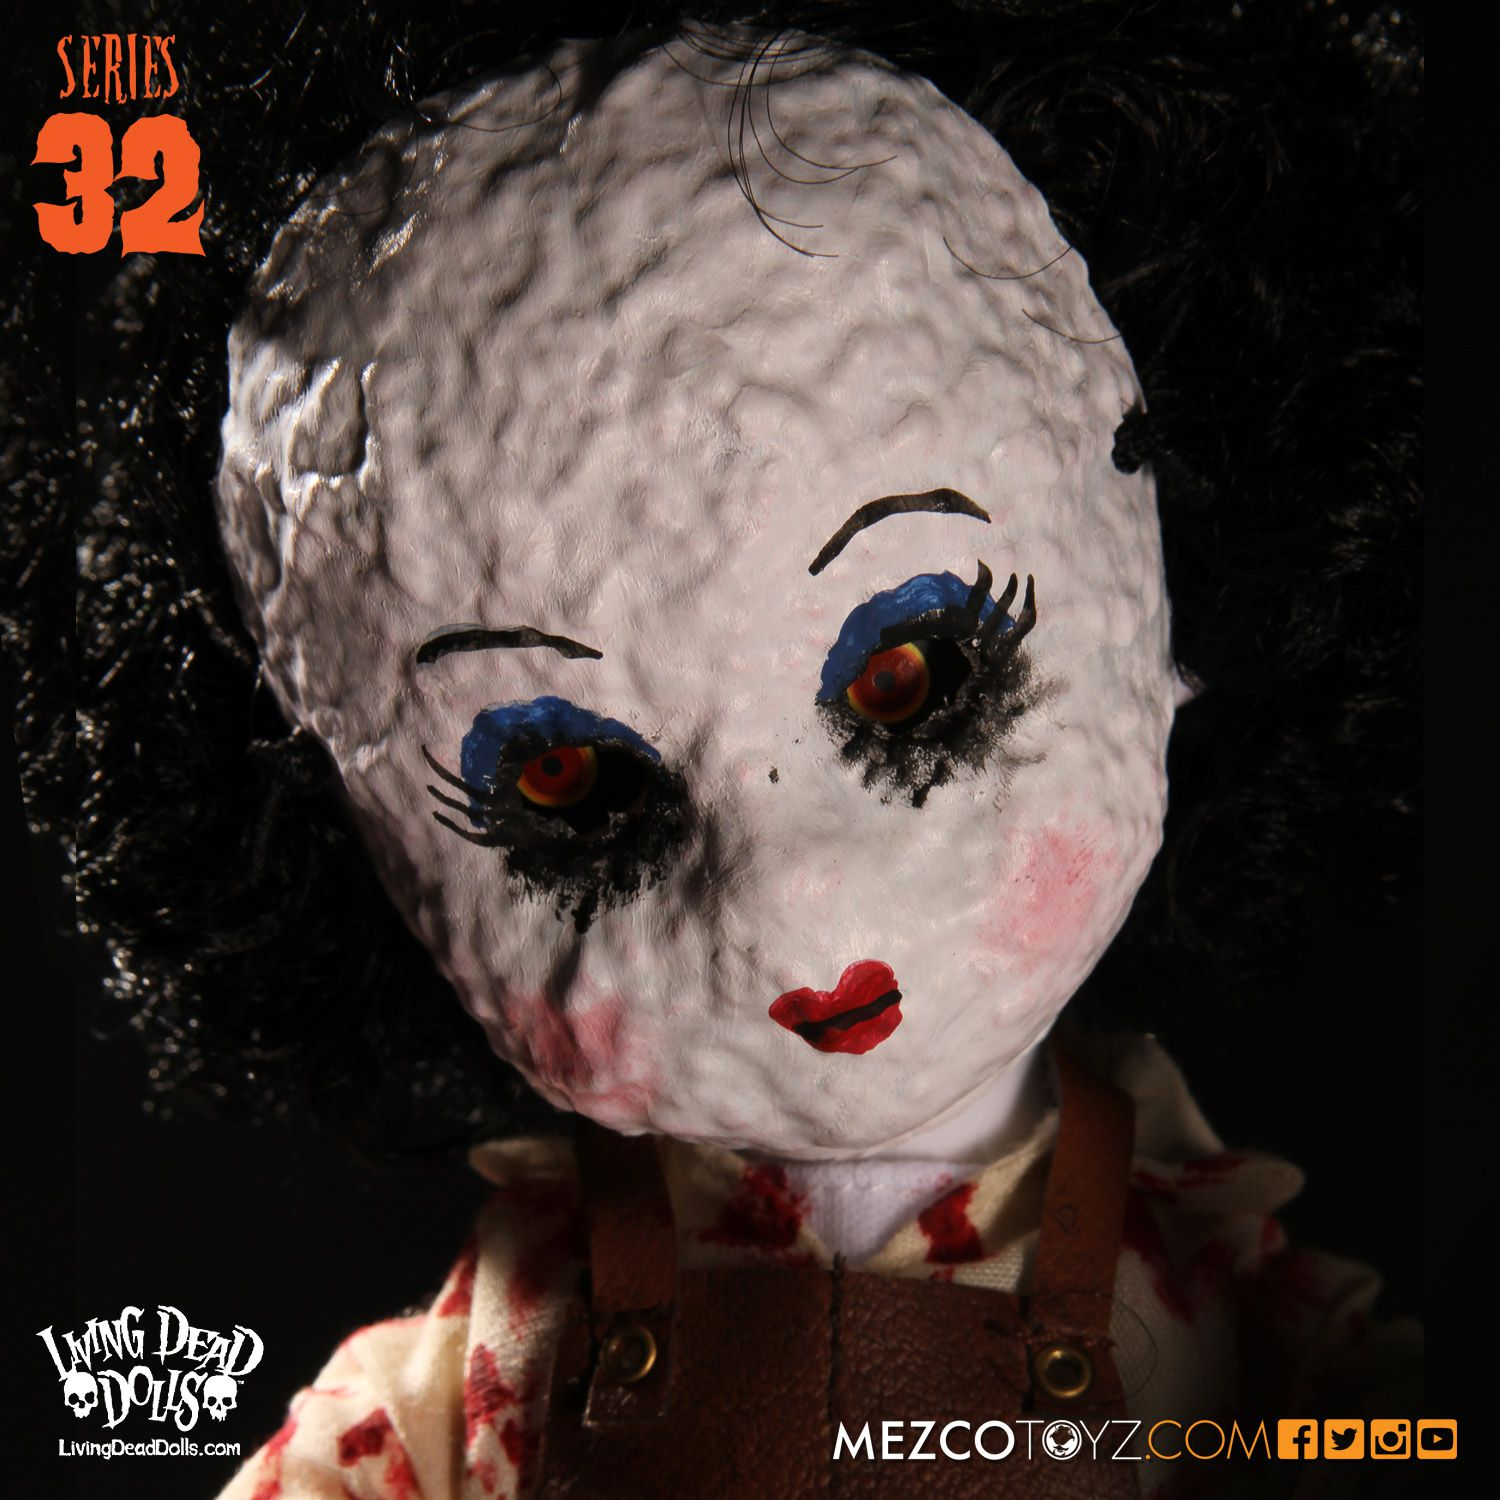 Living Dead Dolls Series 32 Mezco Toyz